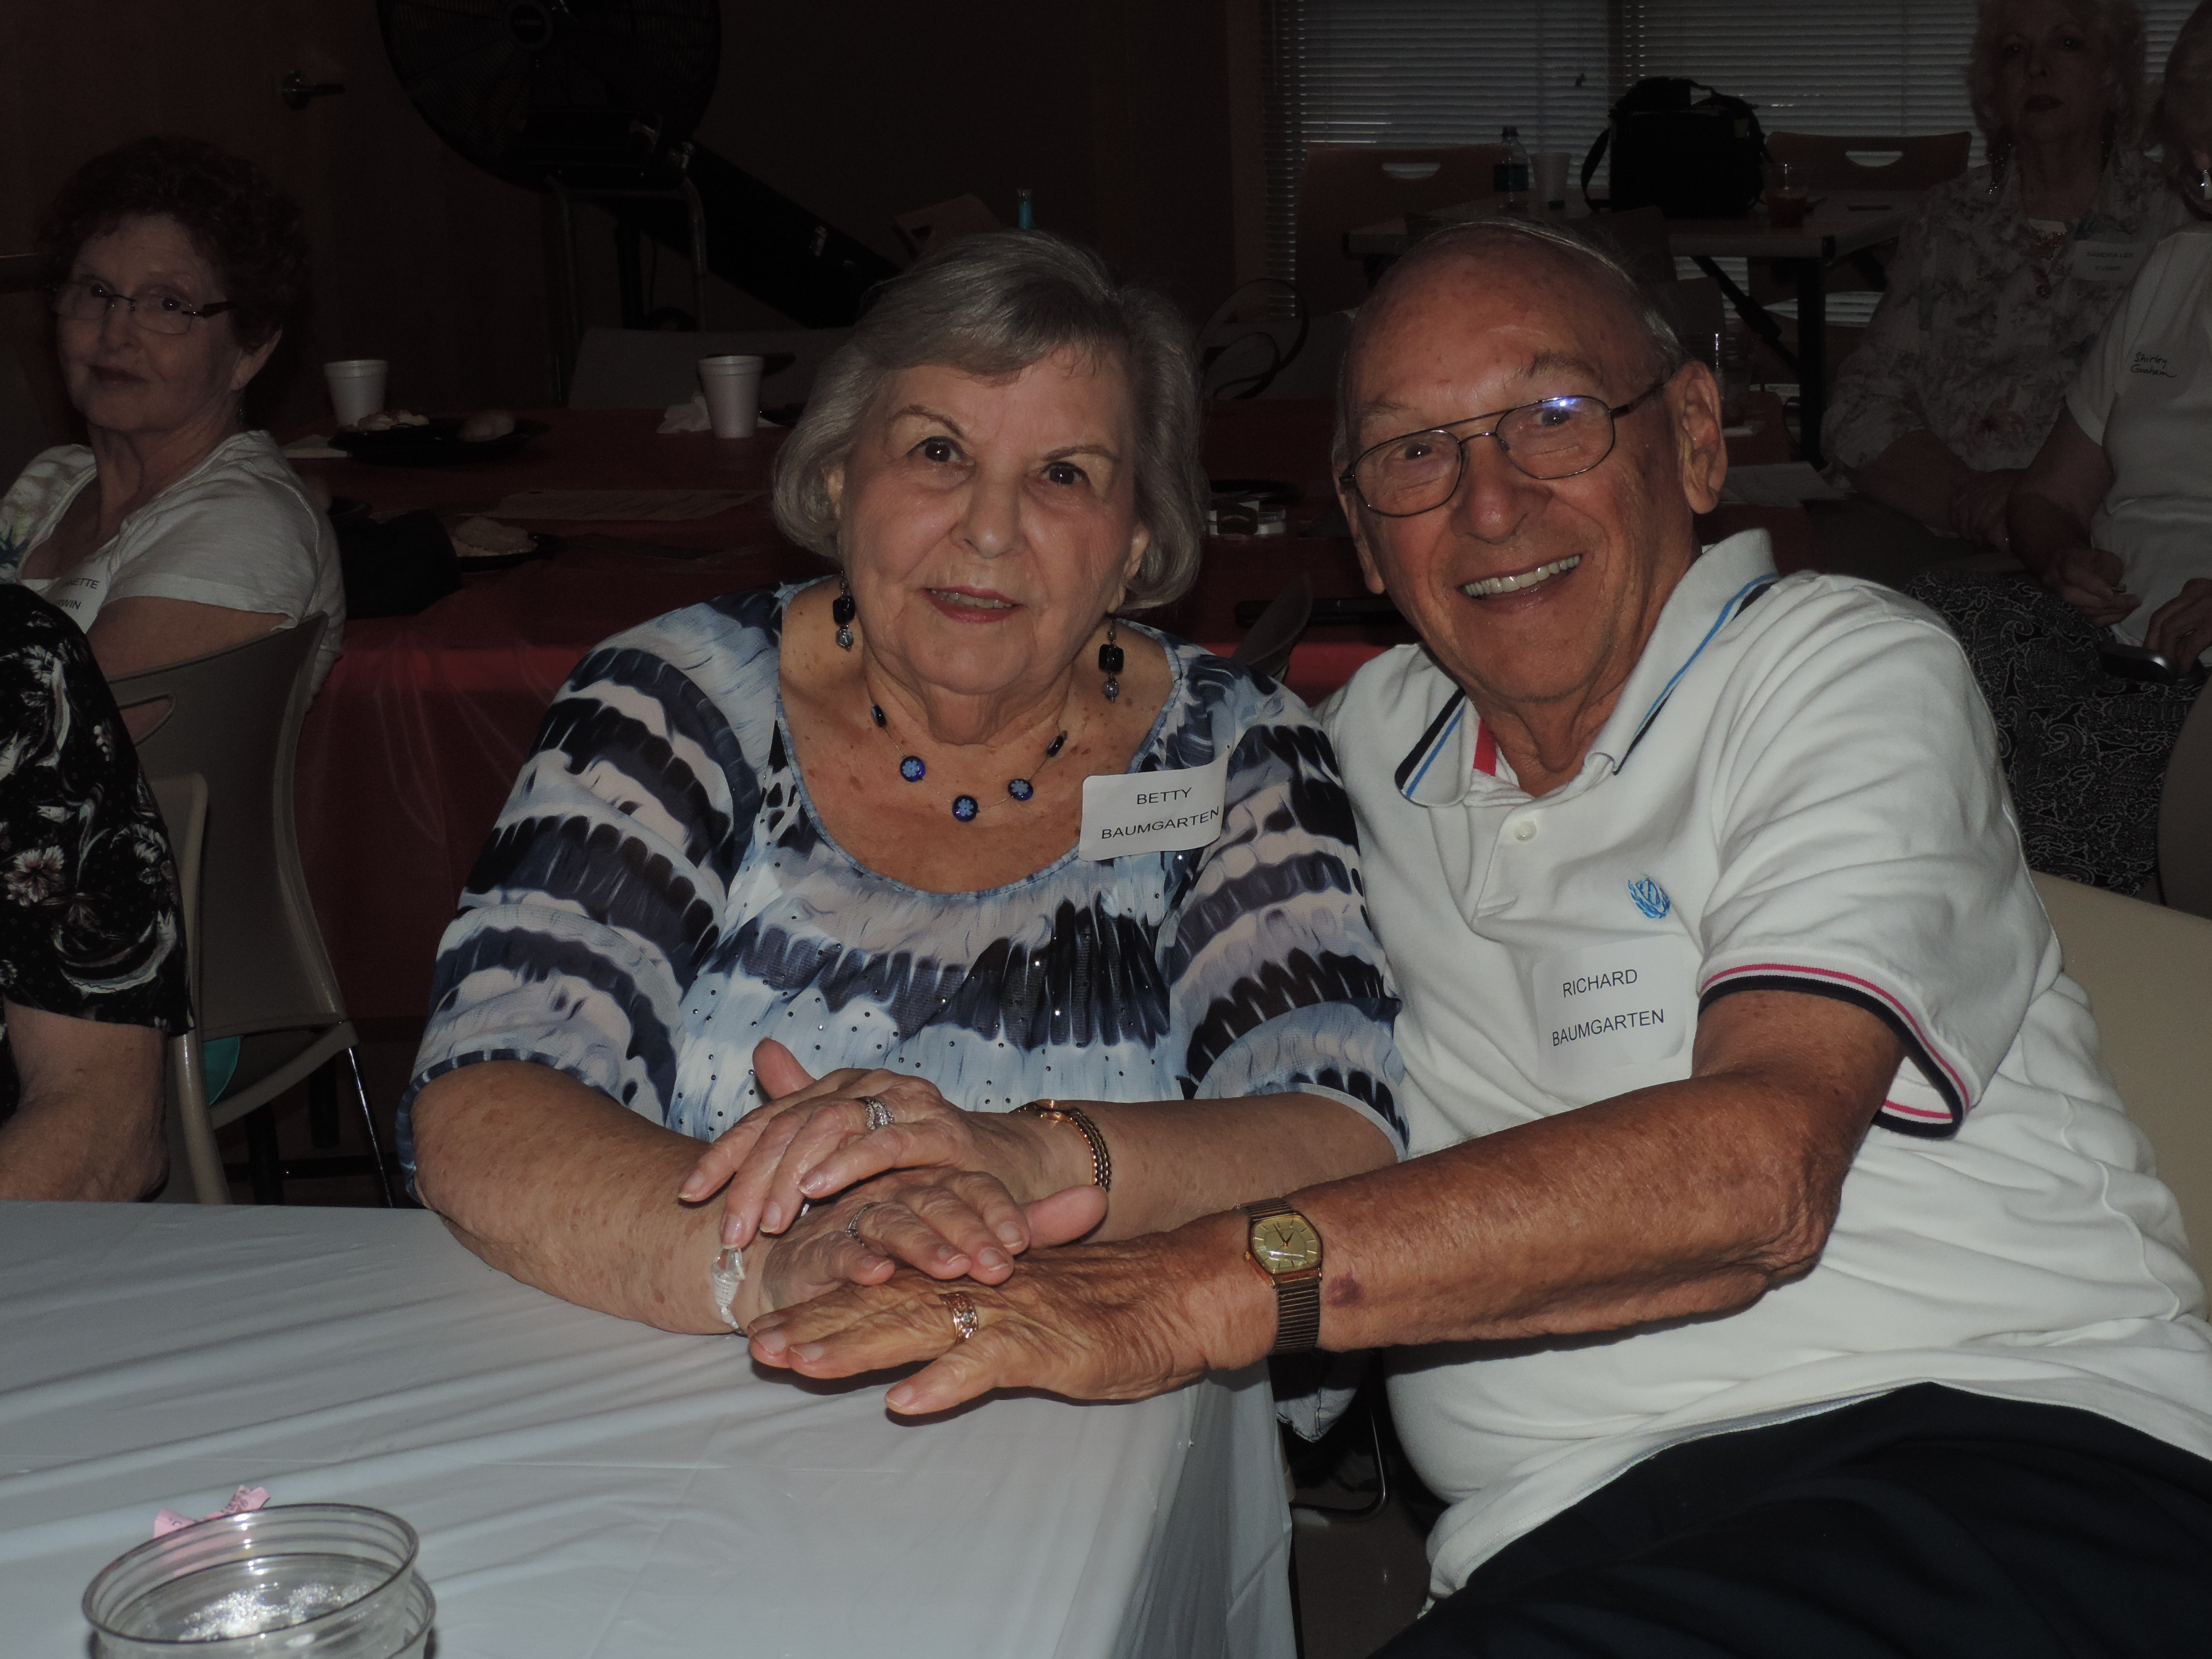 Betty and Richard Baumgarten